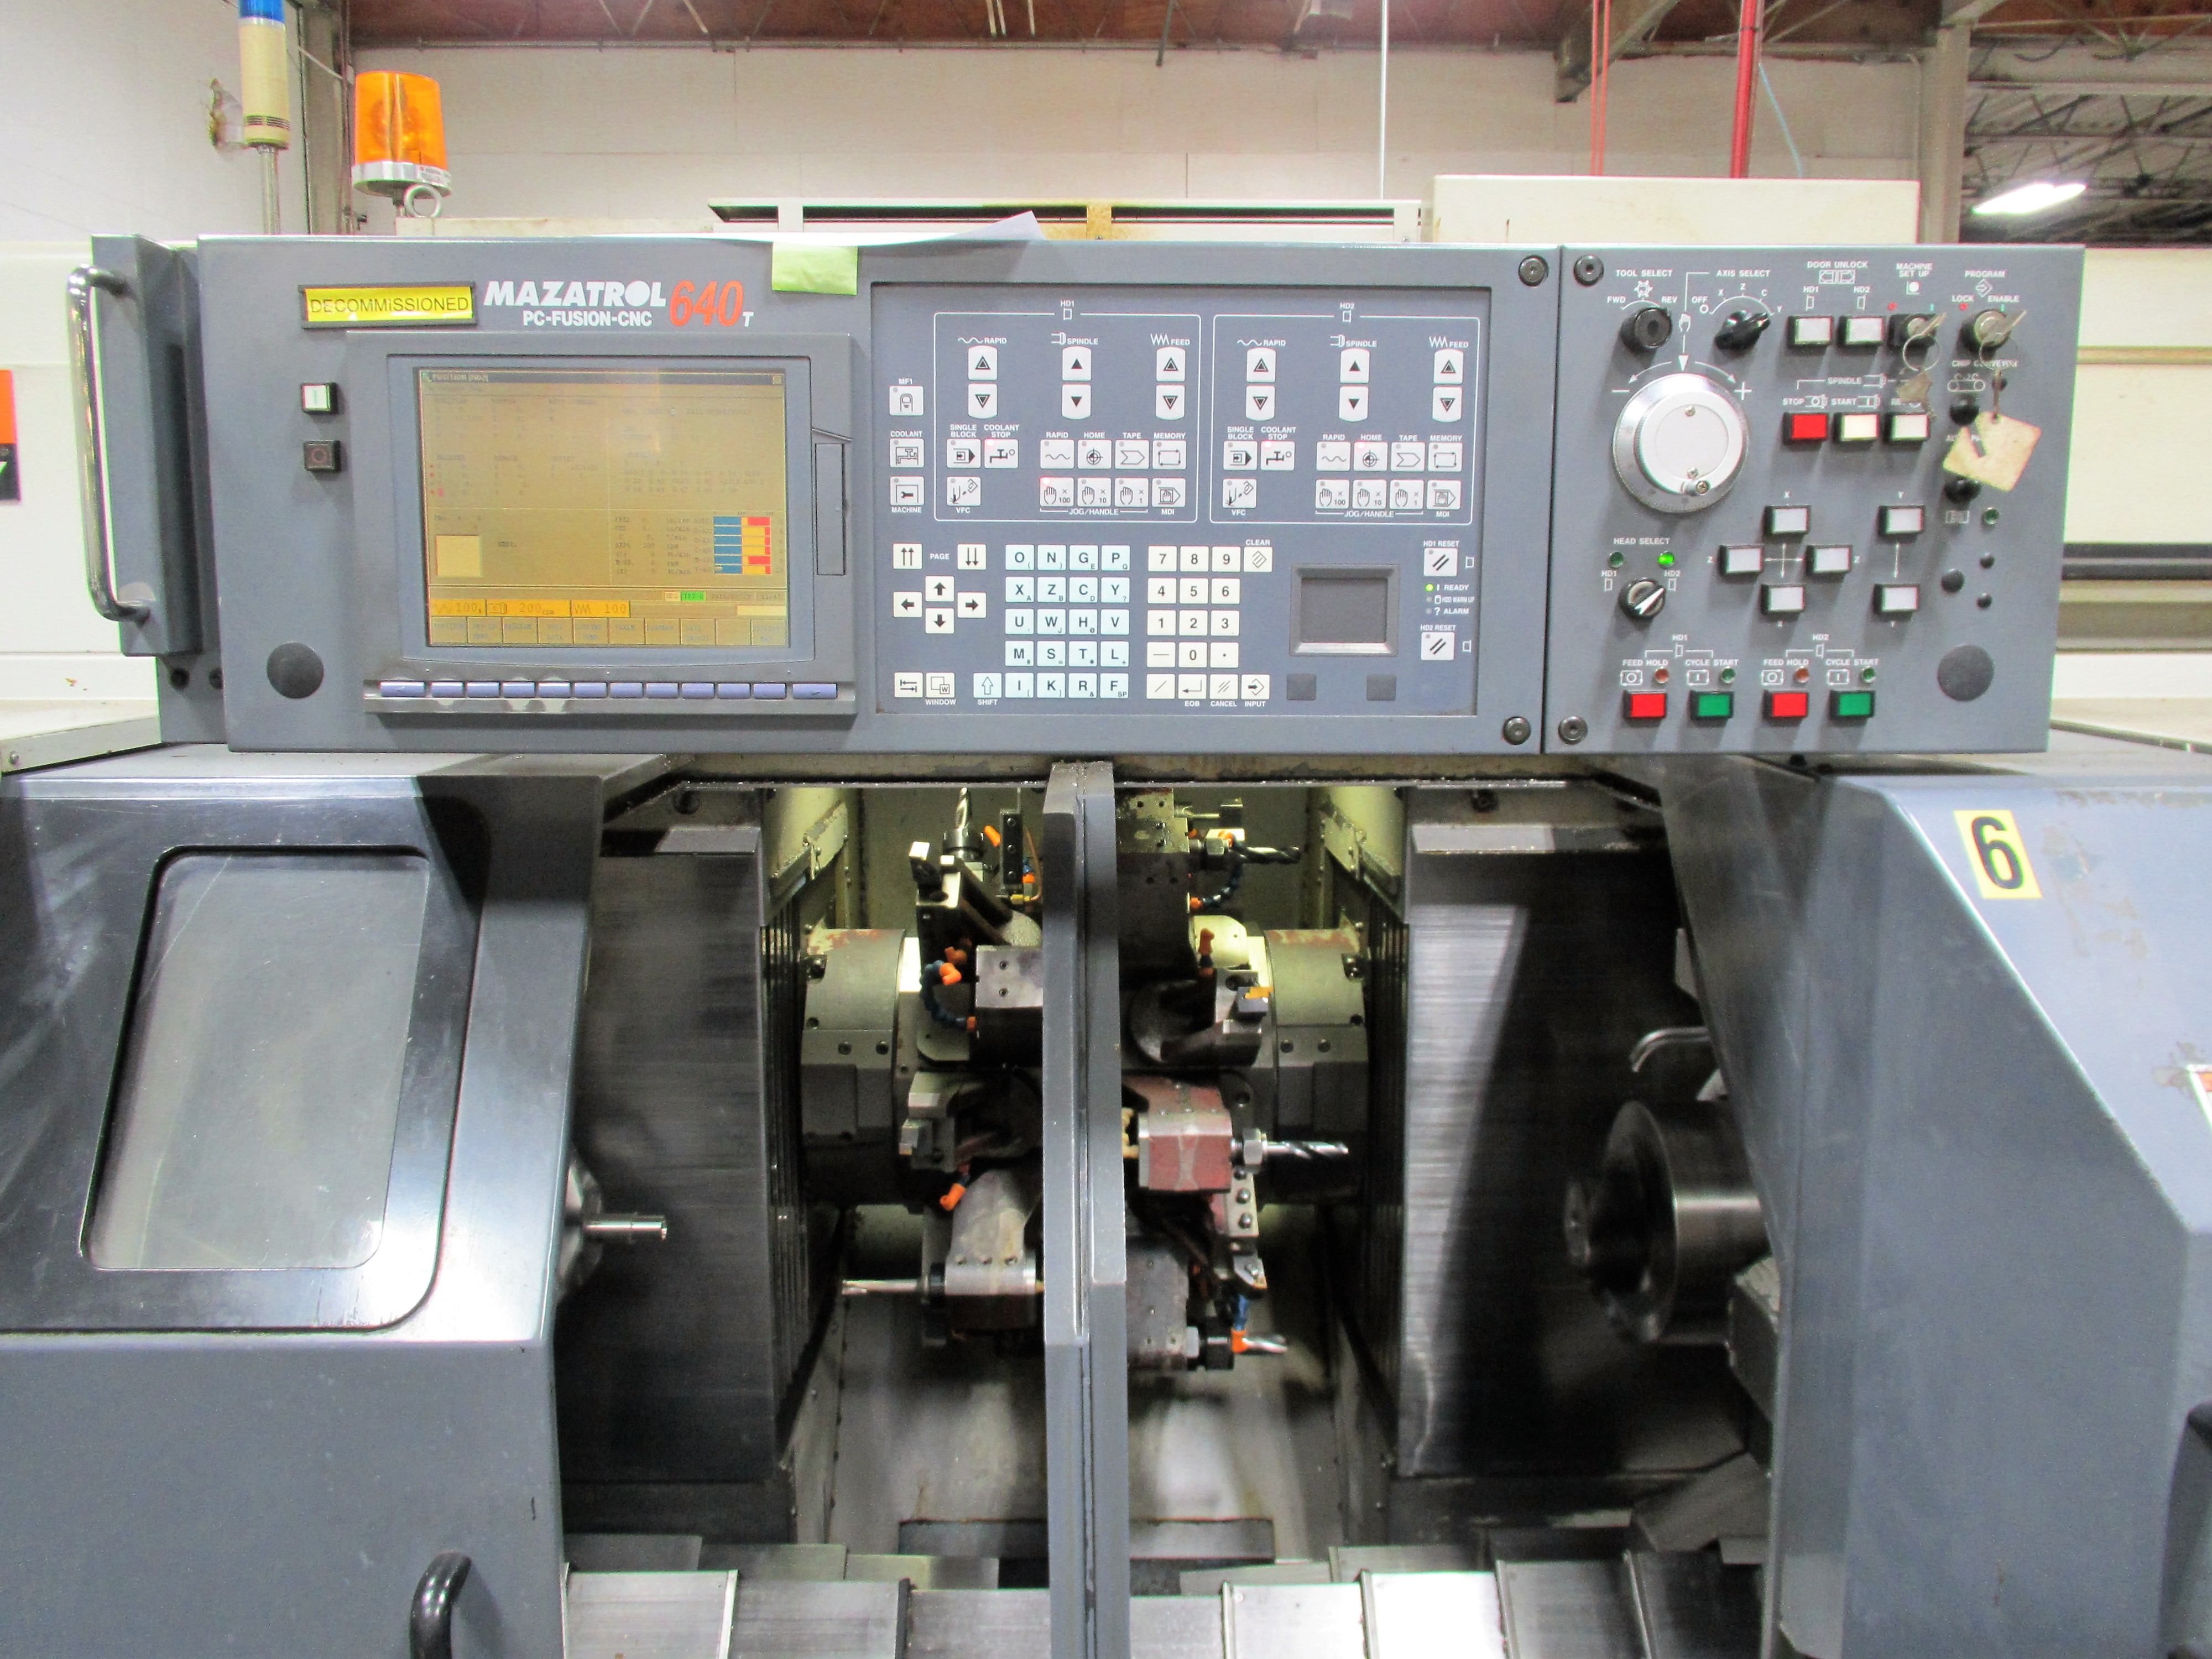 MAZAK MULTIPLEX 6200Y 8-AXIS CNC TWIN SPINDLE CNC TURNING CENTER - Image 3 of 12